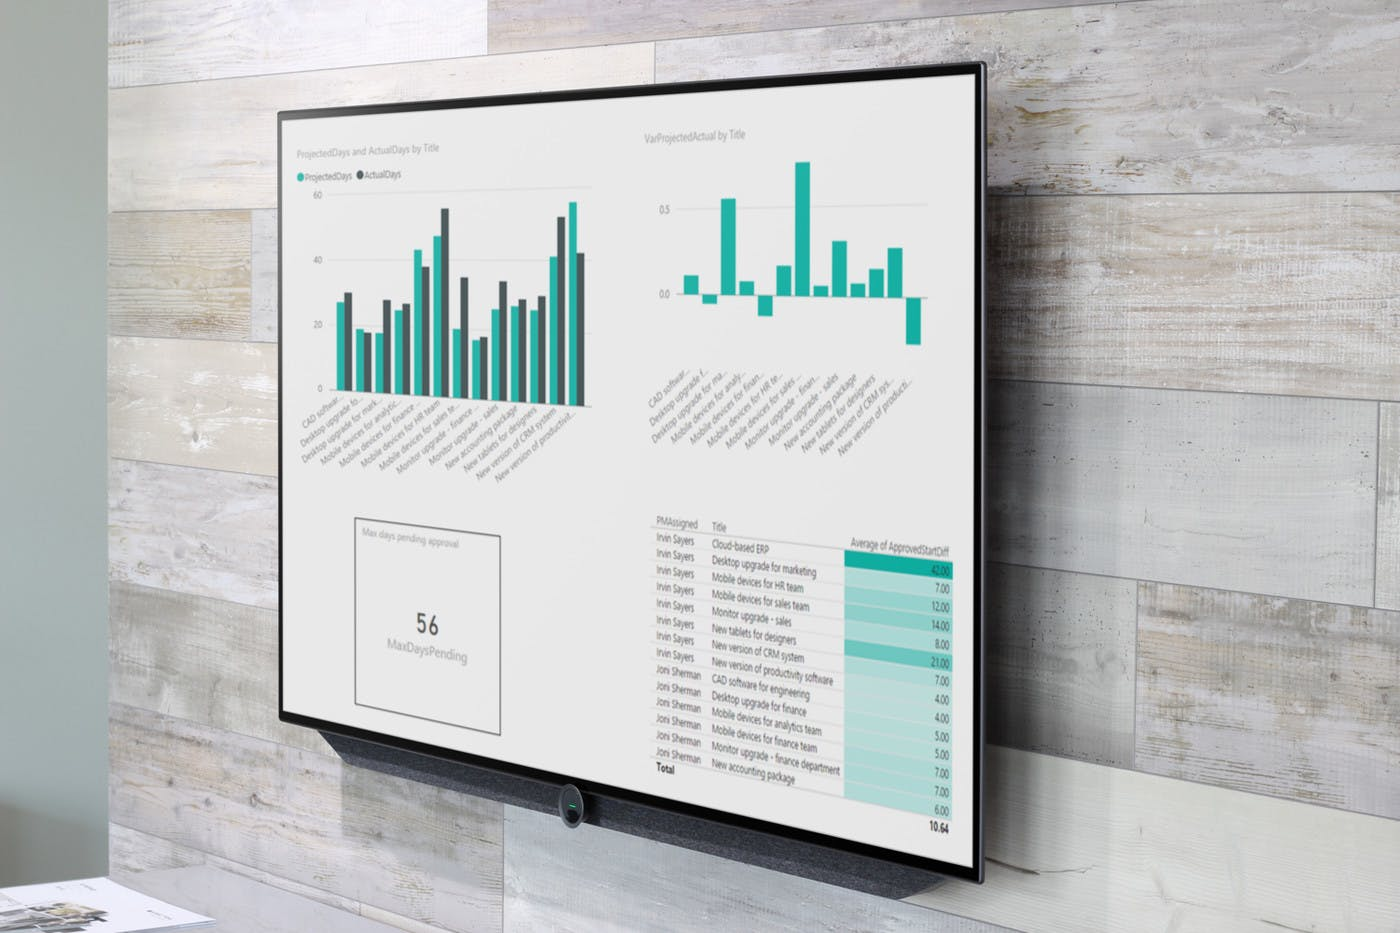 How to Share Project Management Dashboards to Digital Signage